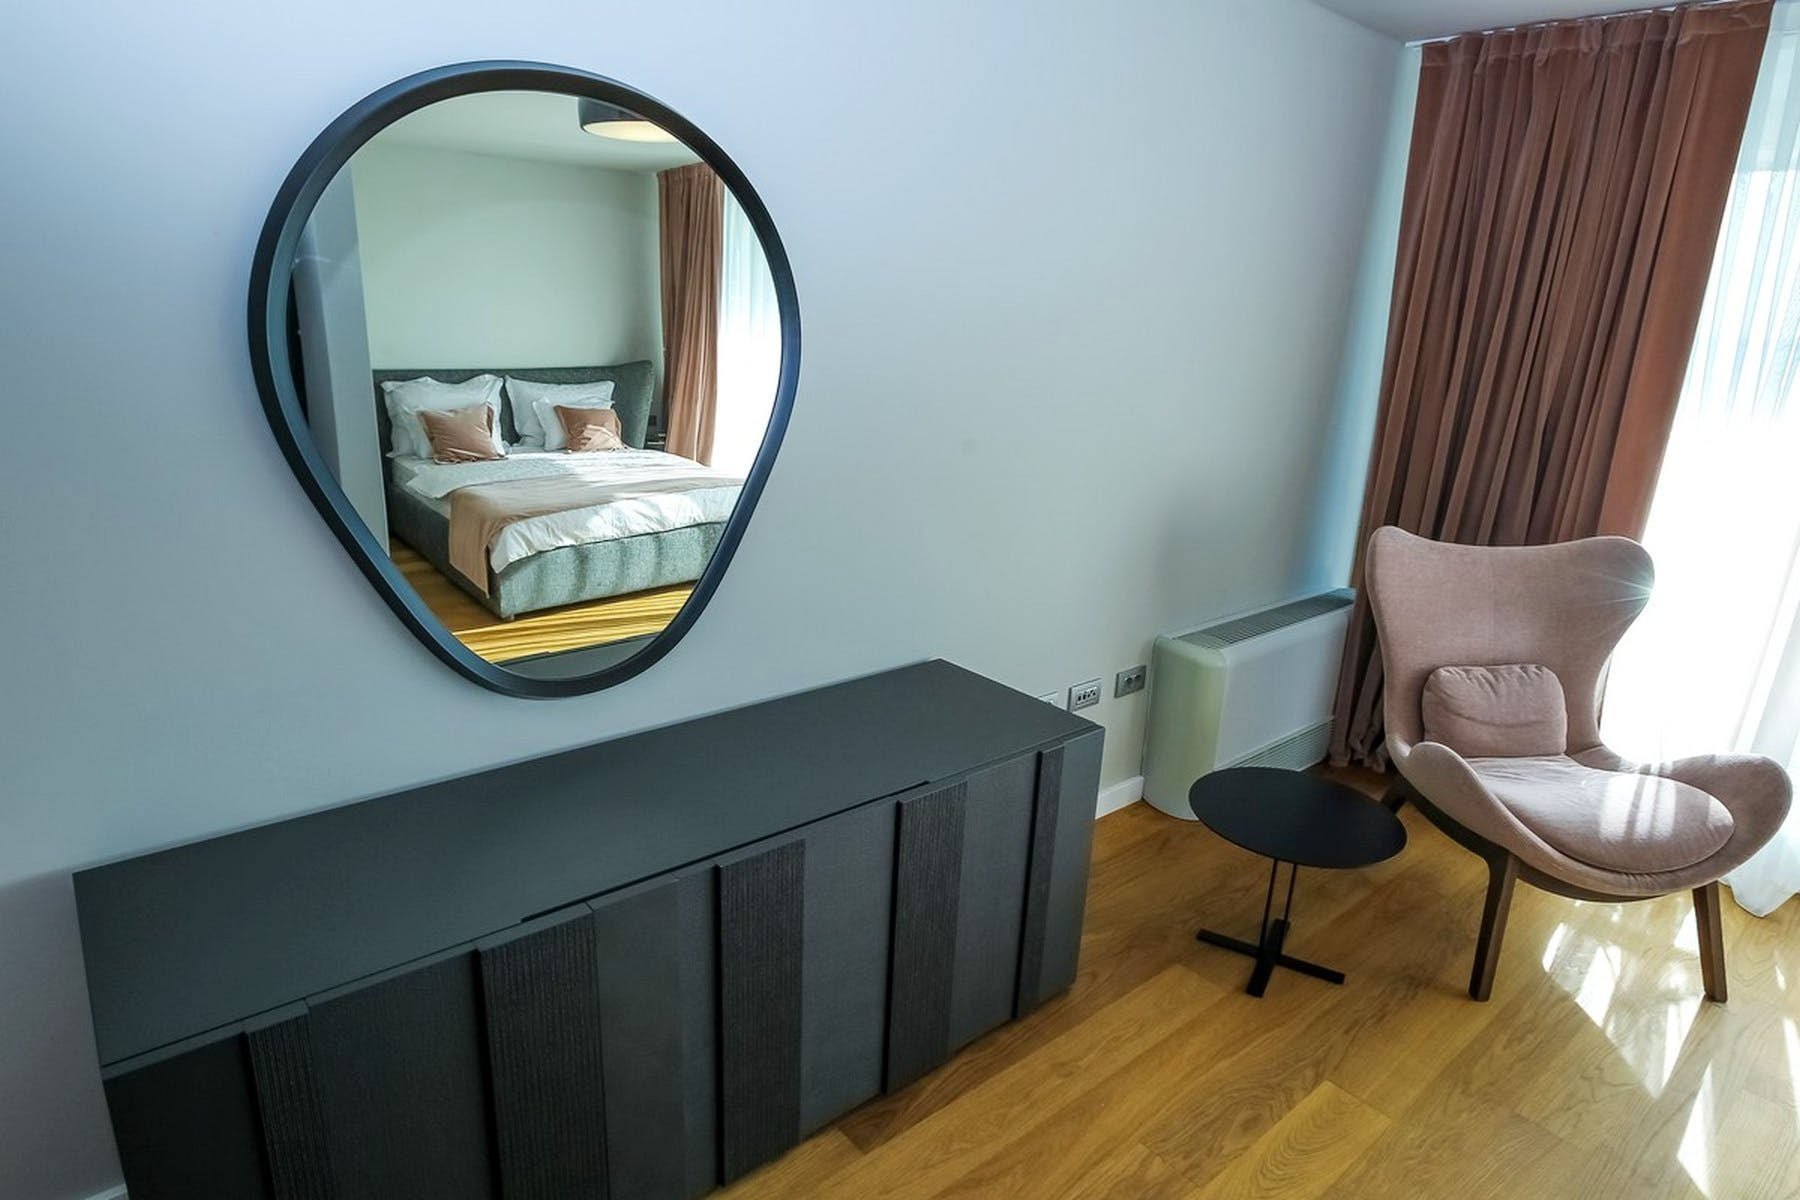 Another angle of the bedroom